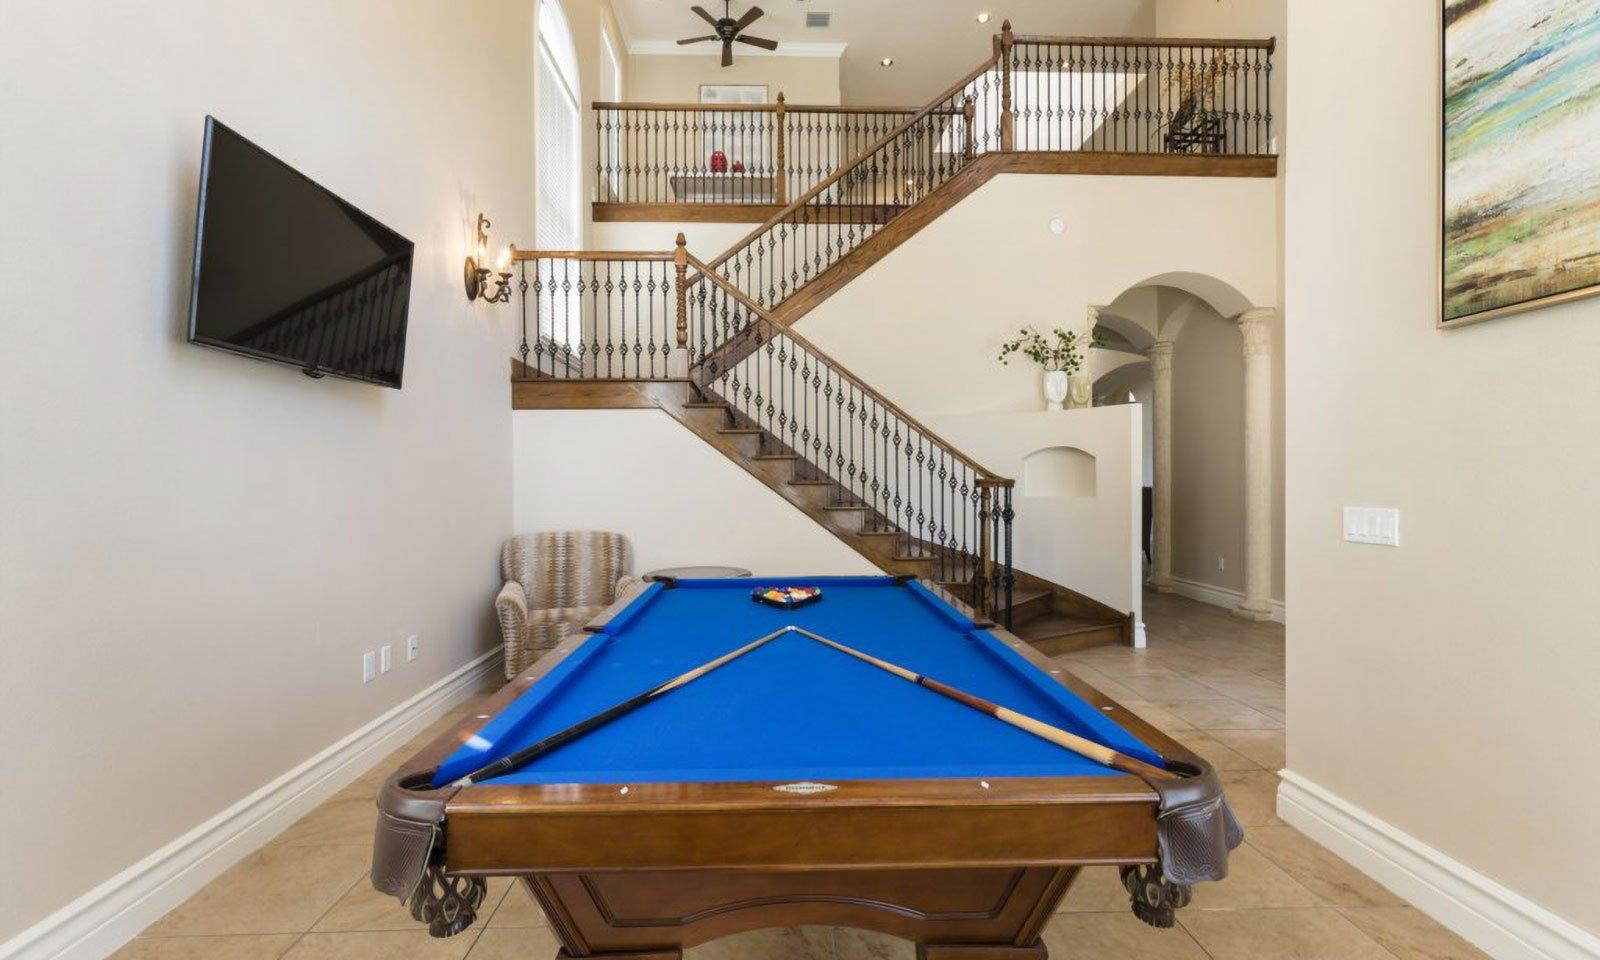 Property Image 2 - Wonderful Home with Pool Table at Reunion